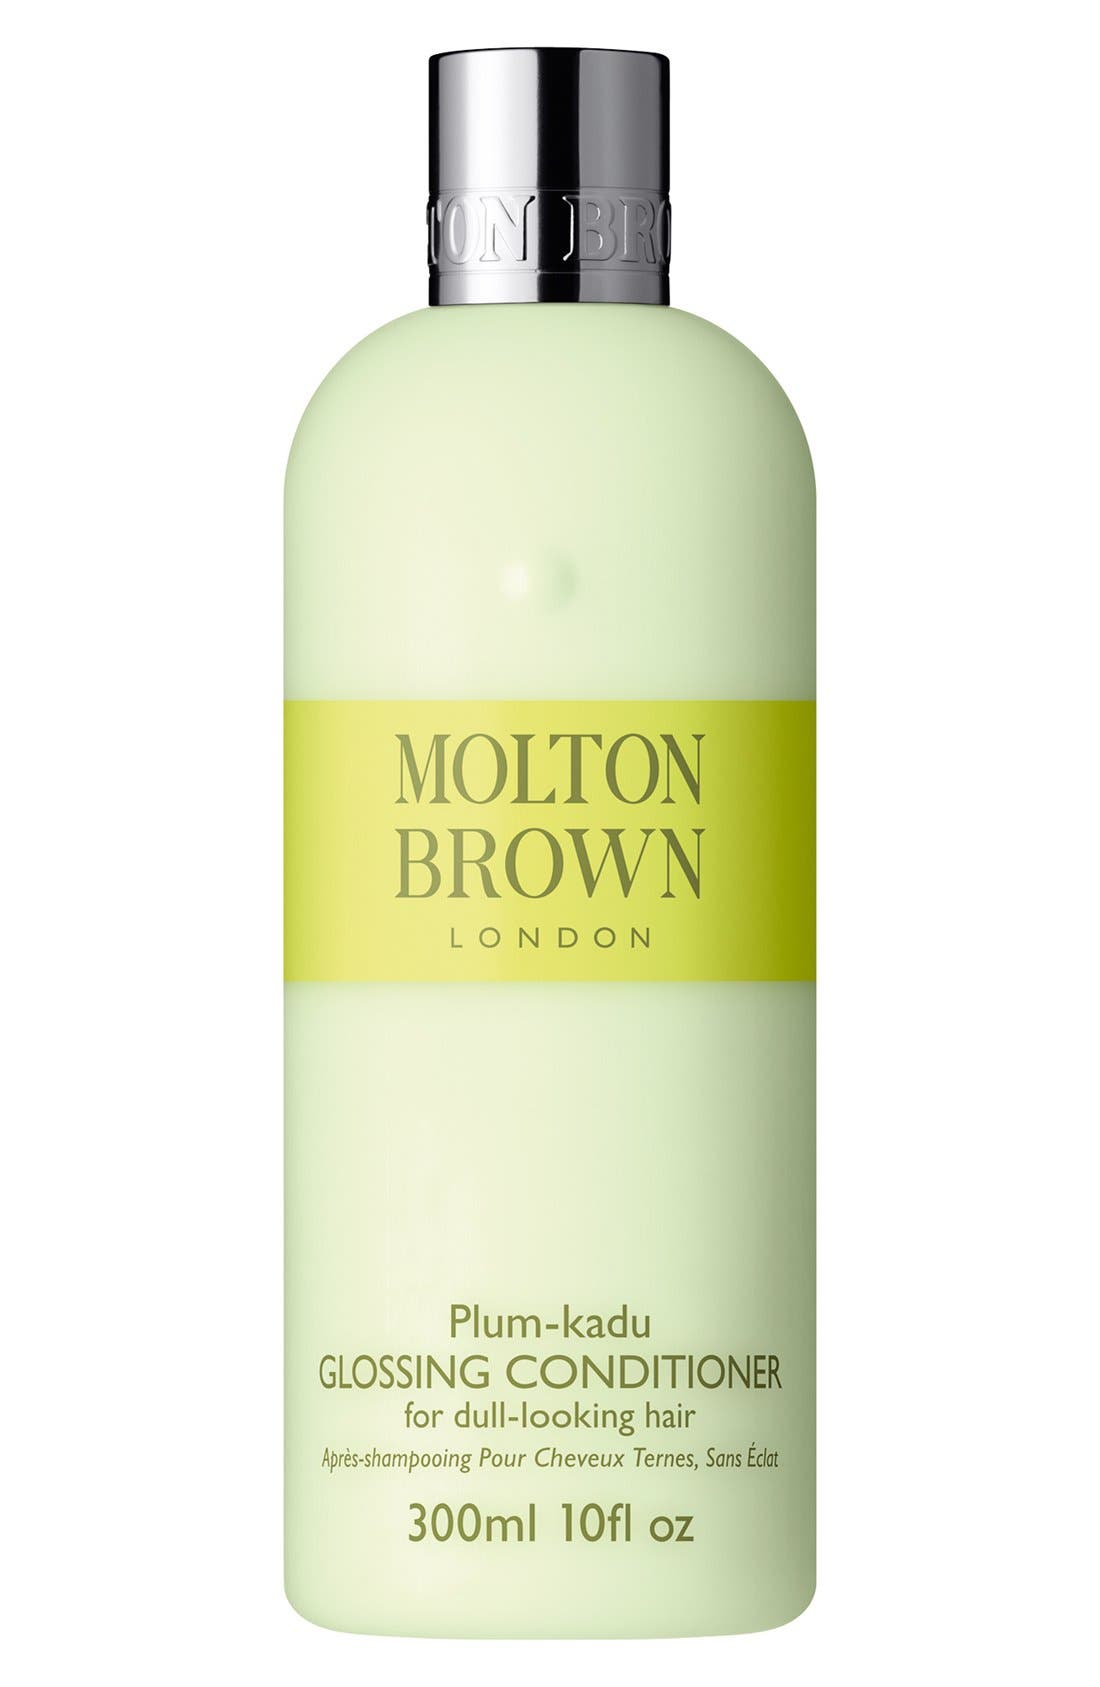 MOLTON BROWN London Plum-kadu Glossing Conditioner